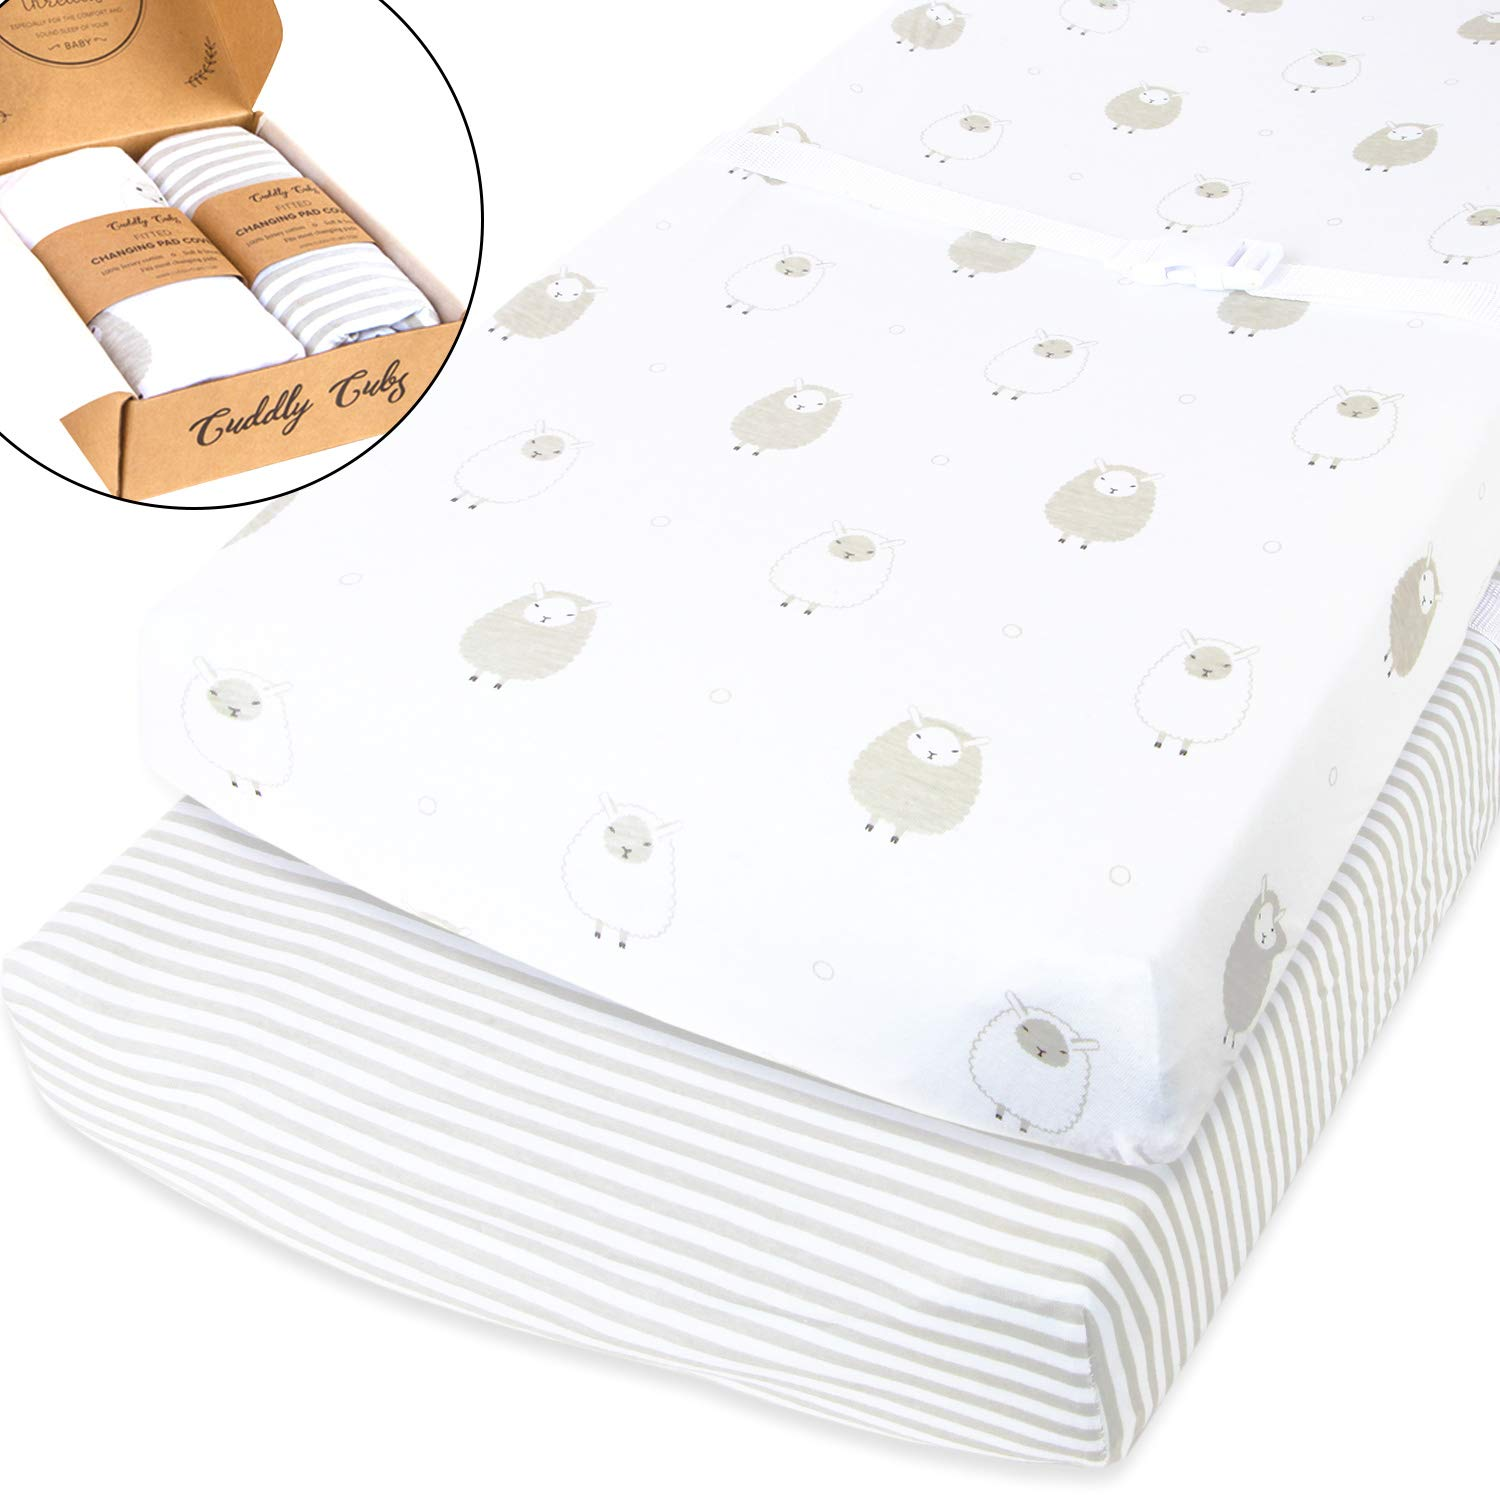 Cuddly Cubs Baby Crib Mattress Sheets Set | 2 Pack Crib Fitted Sheet For Boys, Girls, Toddler | Unisex Jersey Knit Cotton Babies Sheets for Crib | Sheep and Stripe in Grey and White | Top Quality Orion Brands